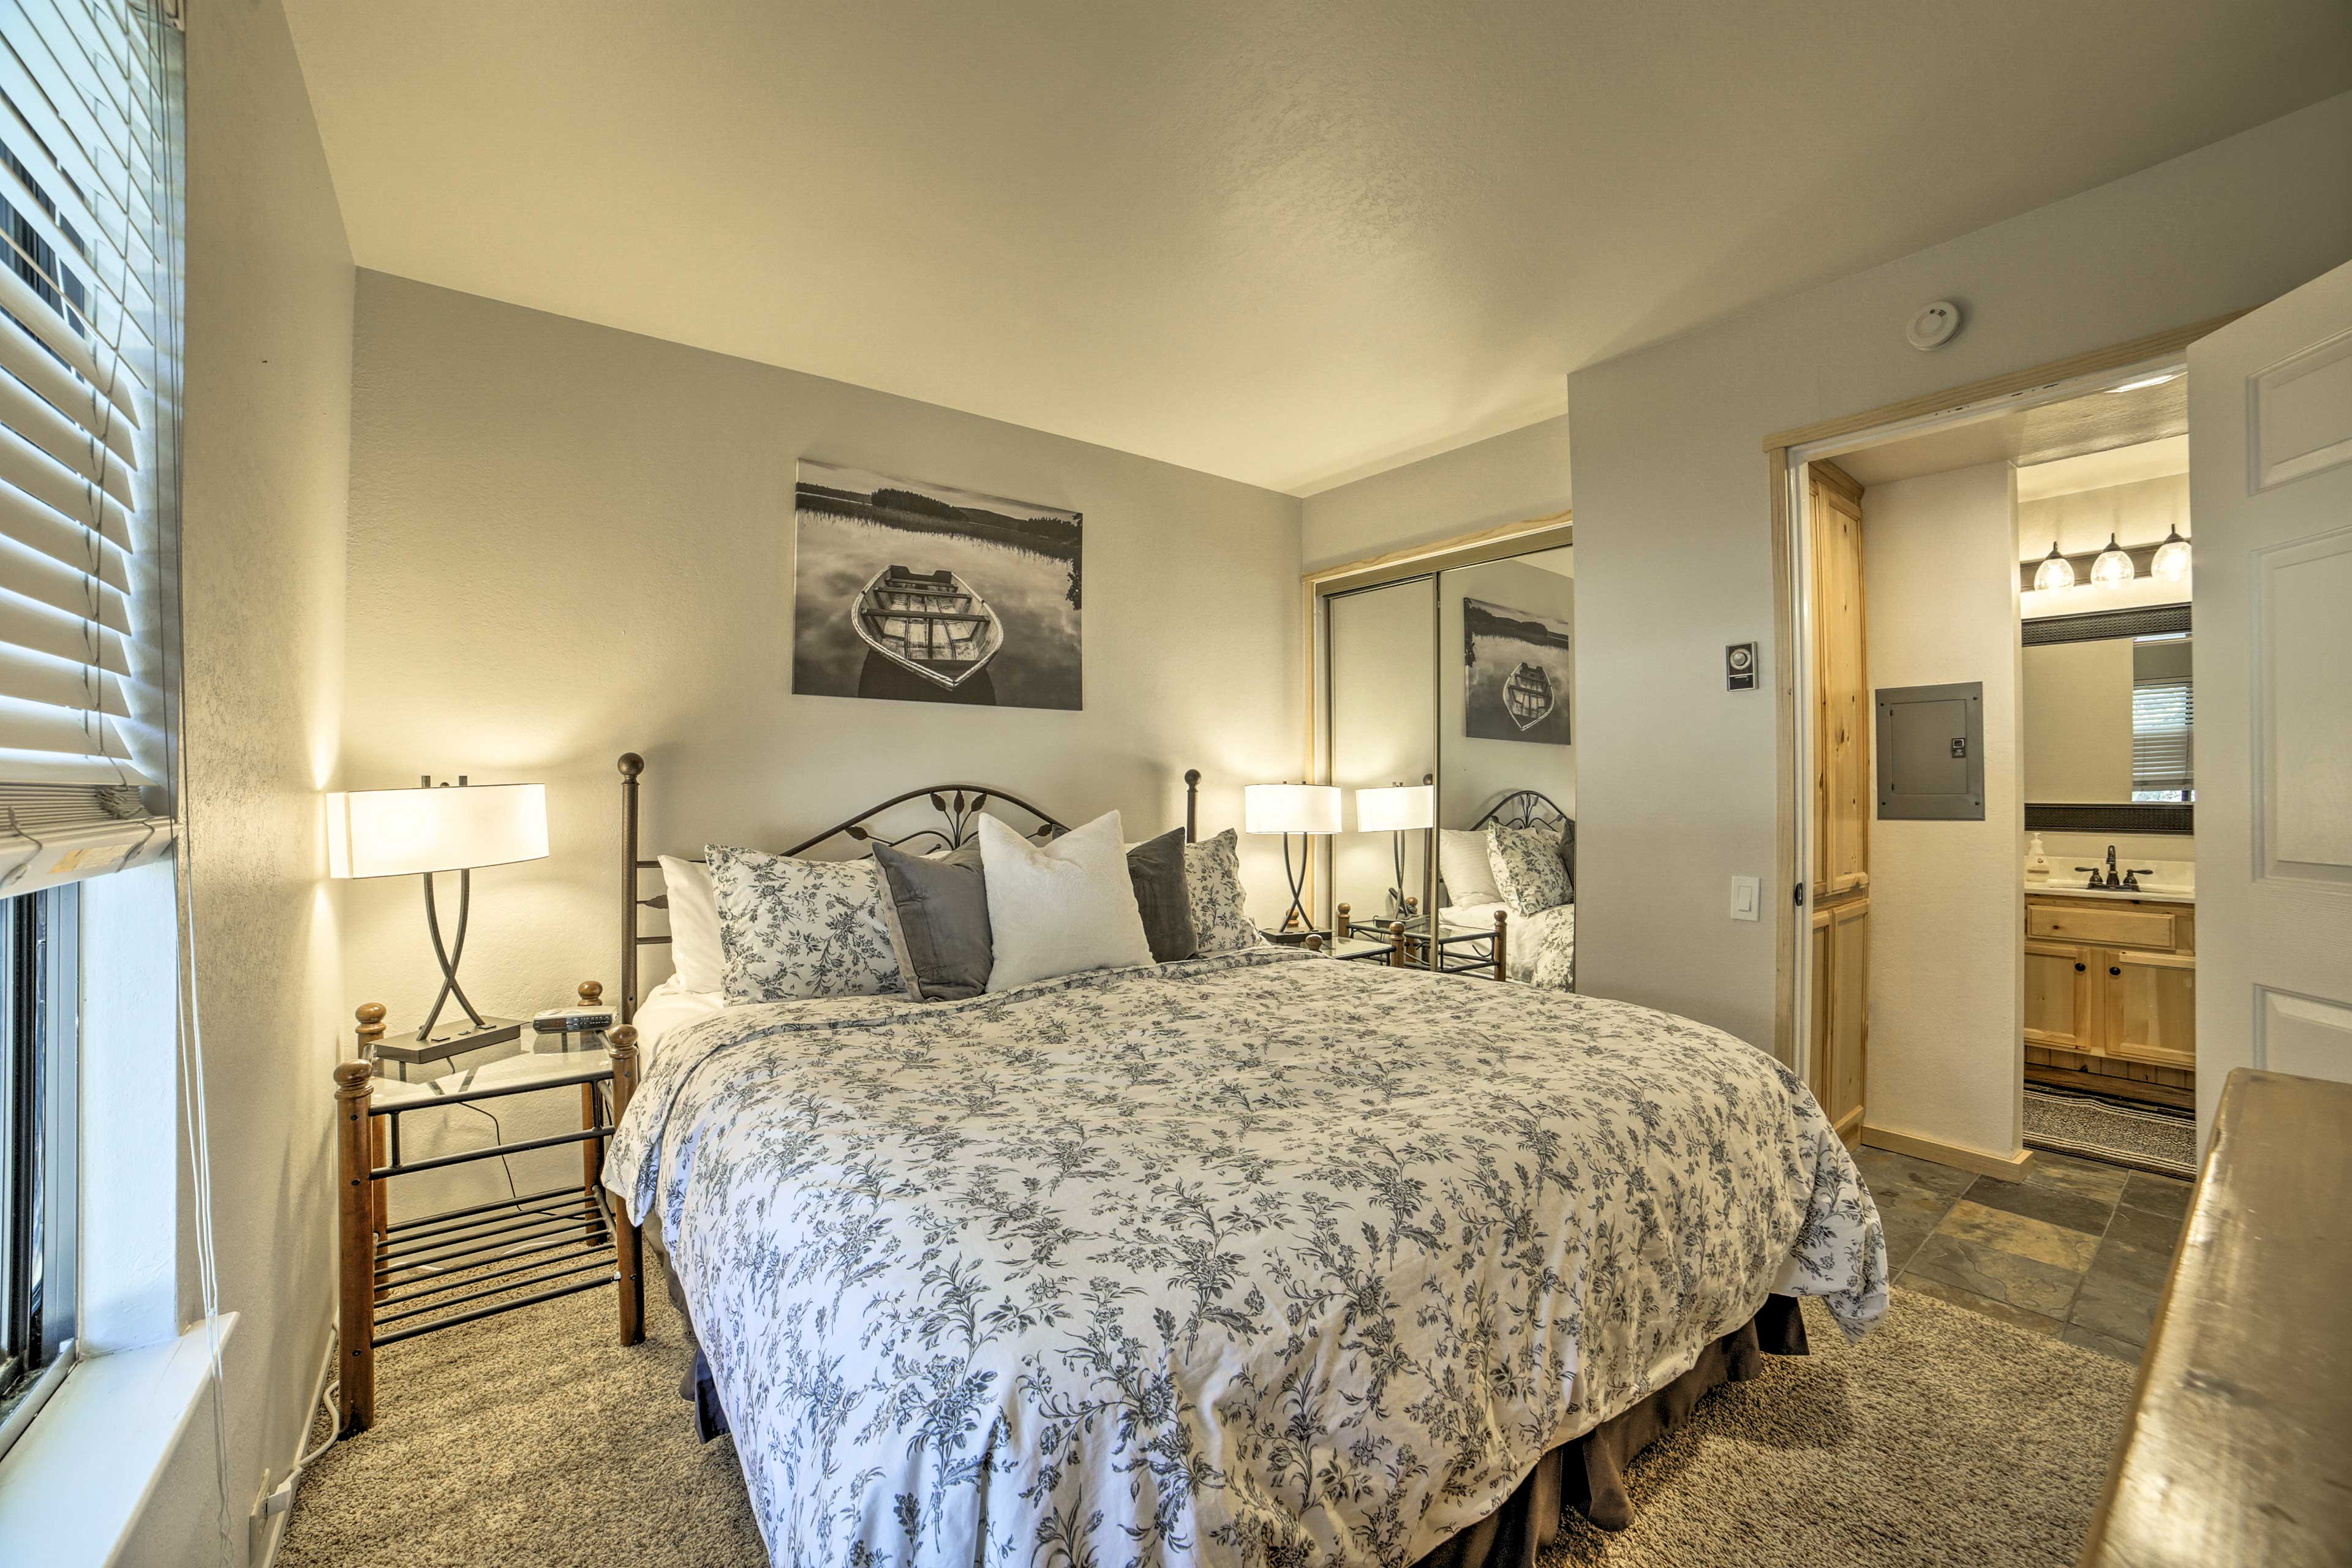 This master bedroom is fit for a king.